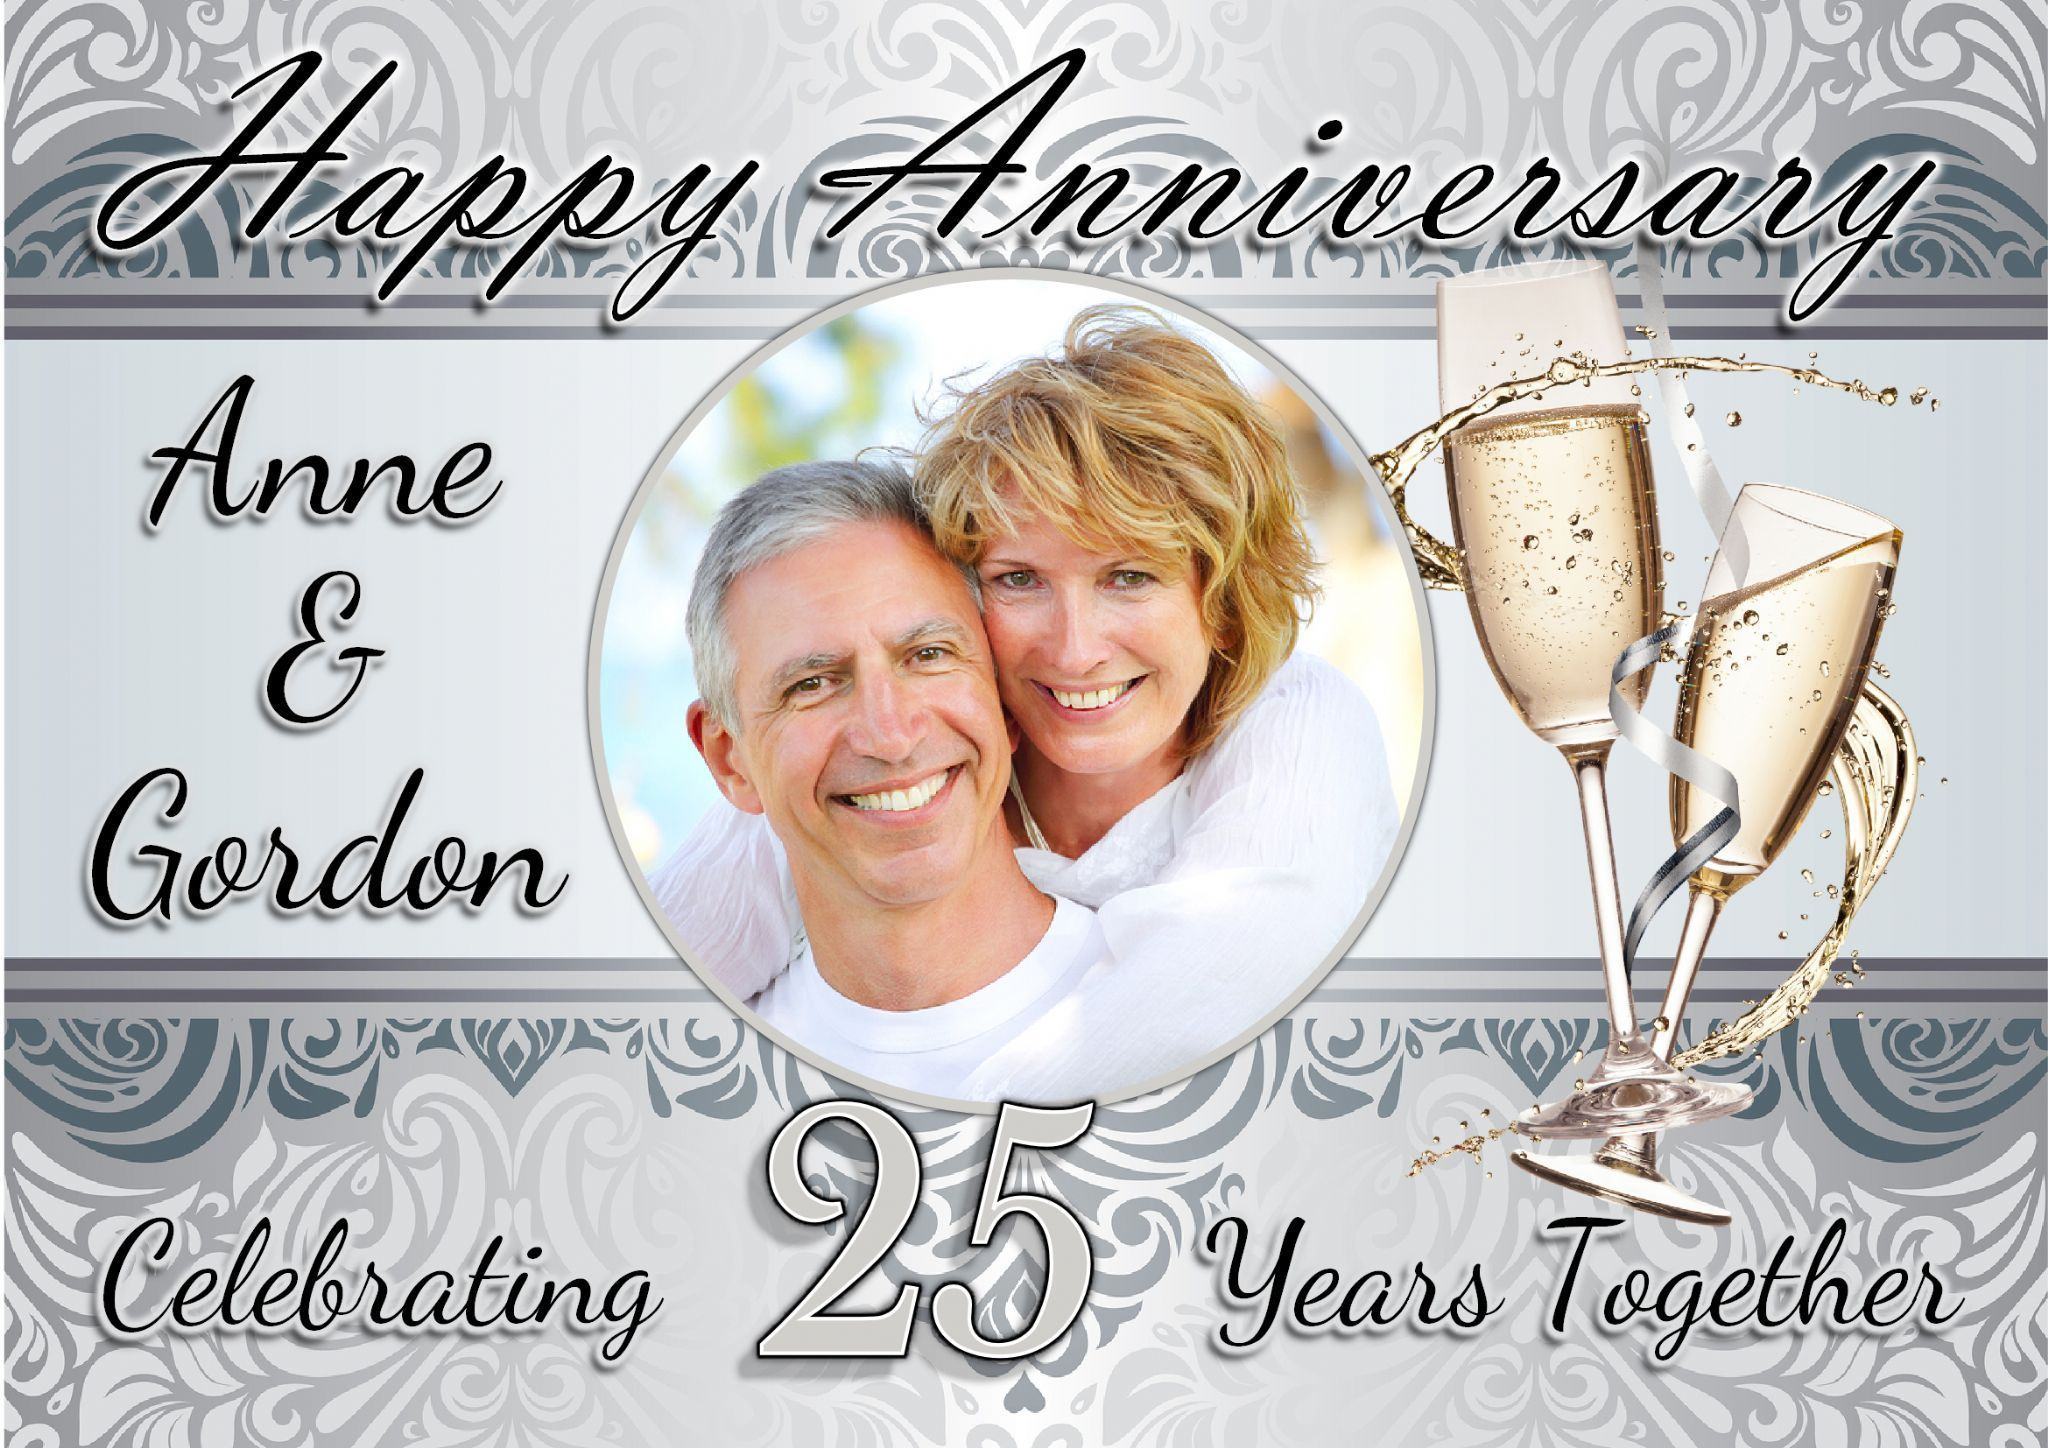 003 Awesome 50th Anniversary Invitation Template Free Picture  For Word Golden Wedding DownloadFull